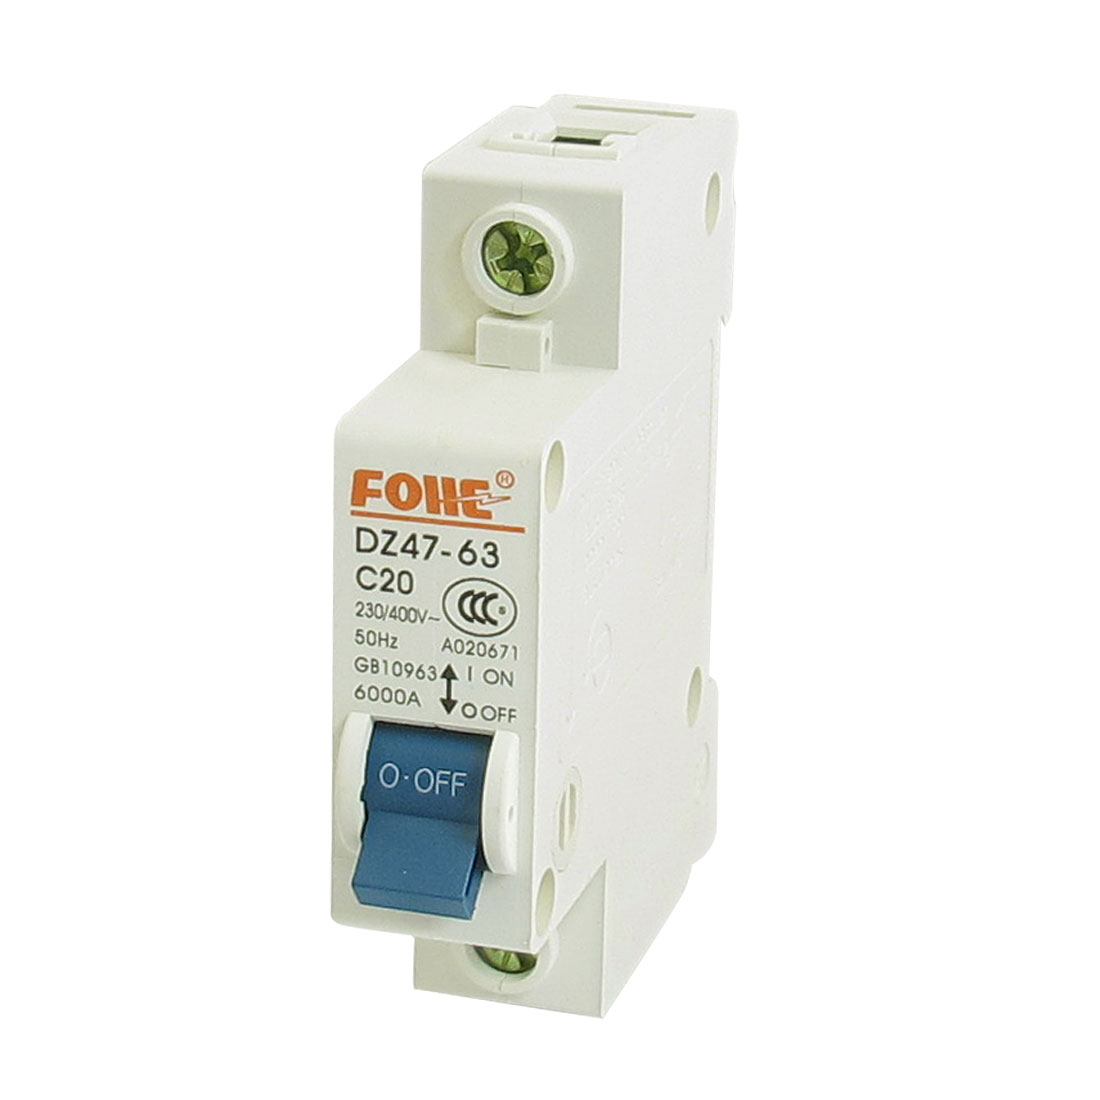 AC 230V 400V 20A 1 Pole 1P On/Off Switch Miniature Circuit Breaker DZ47-63 C20